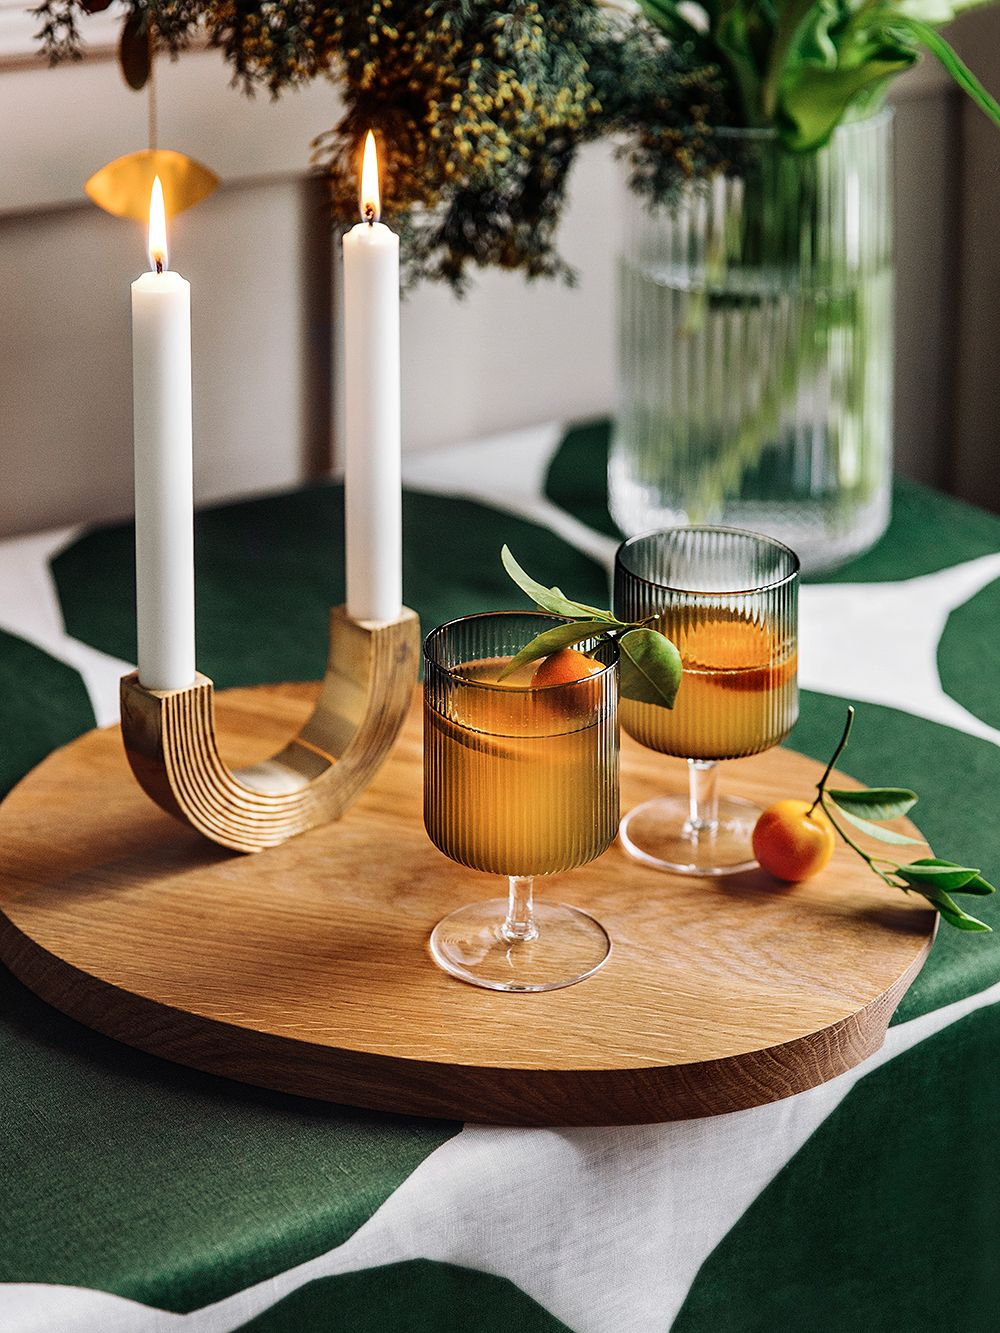 Iittala Raami serving tray